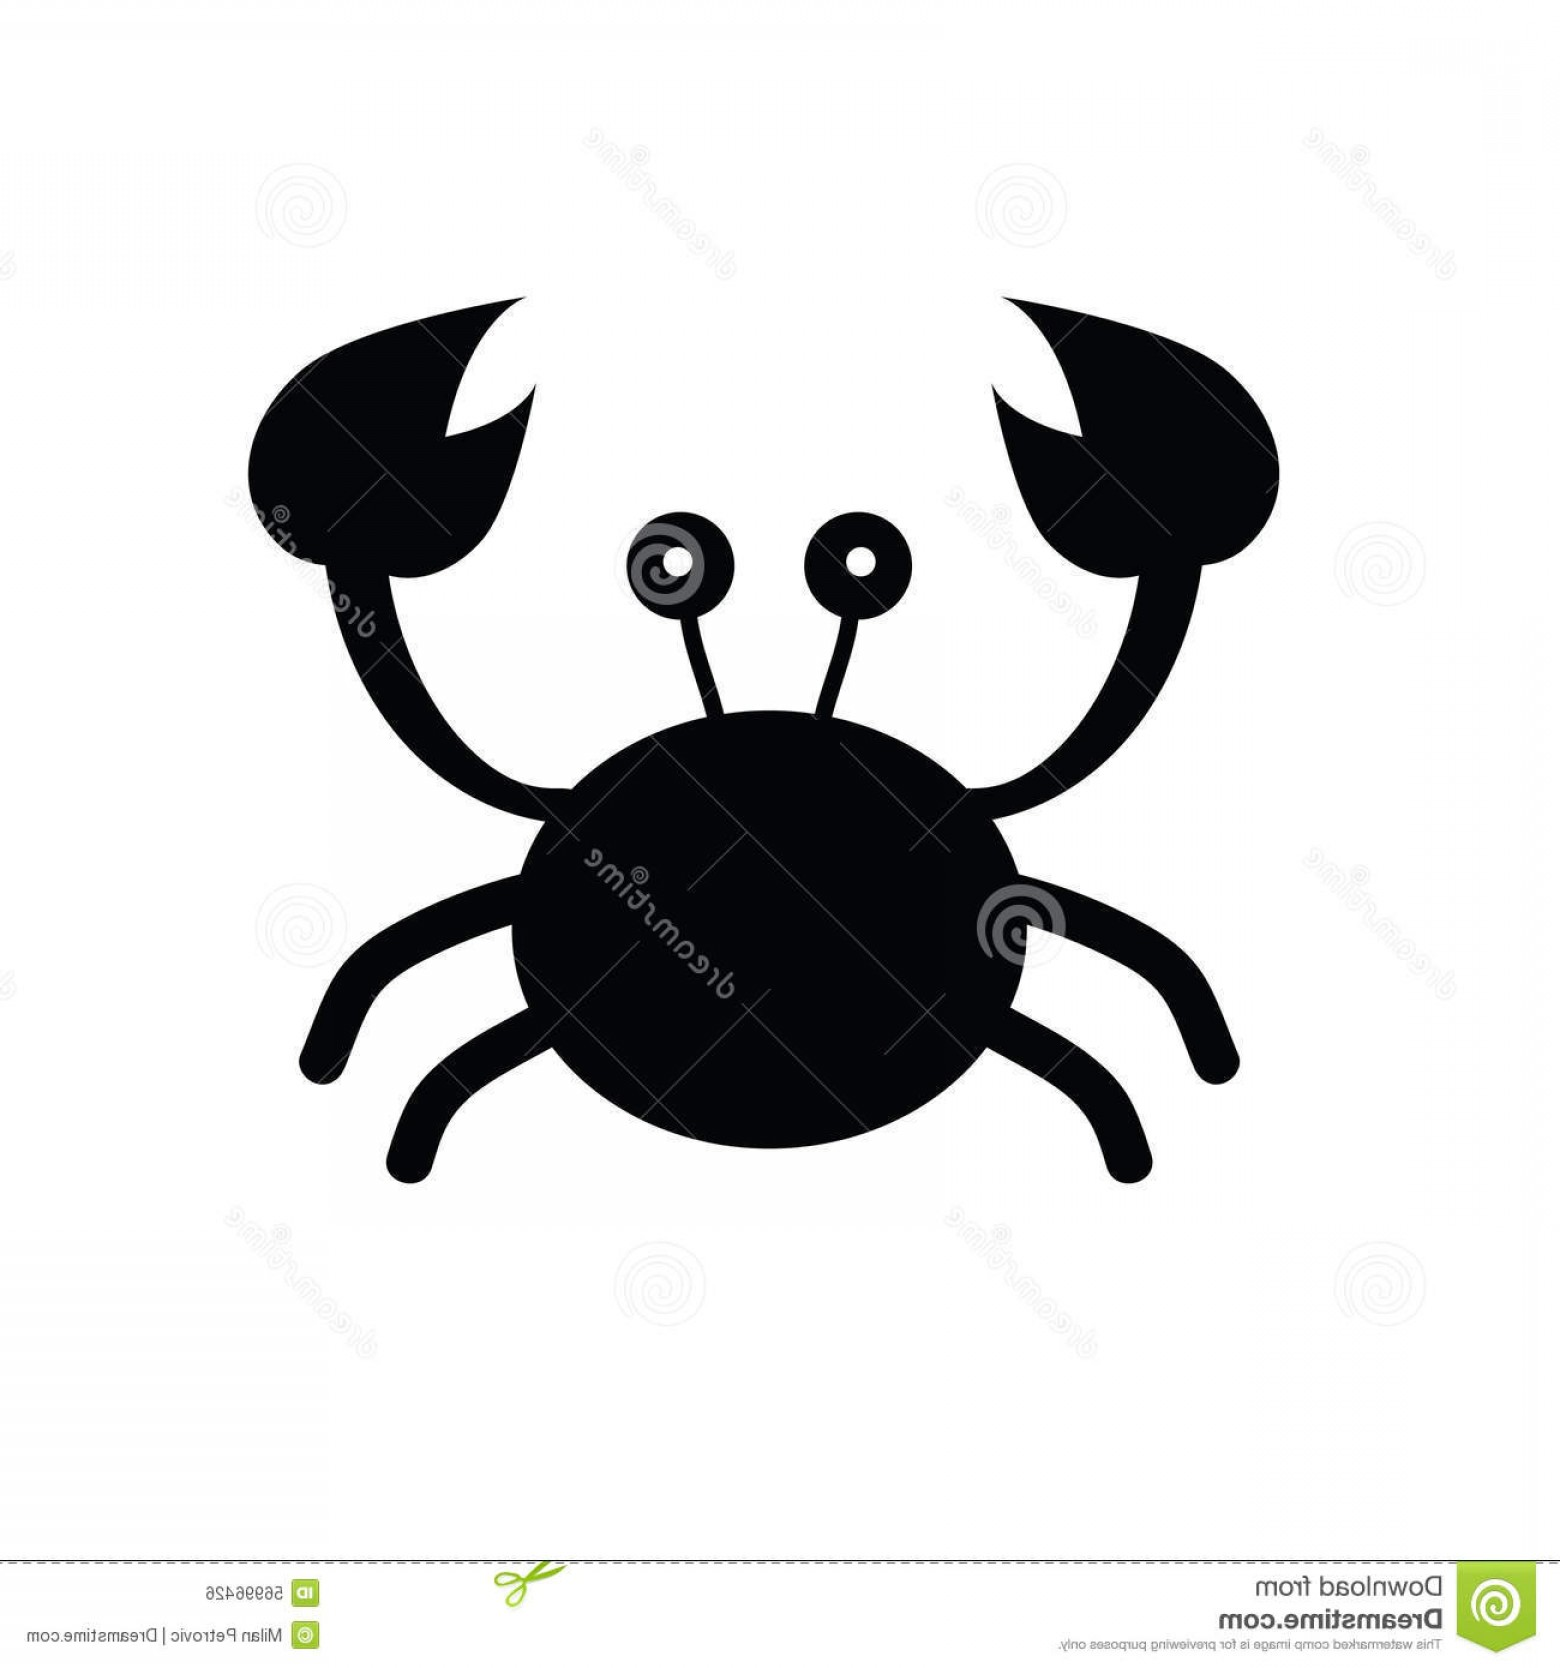 Crab Vector Black: Stock Illustration Crab Cartoon Black Vector Illustration Image